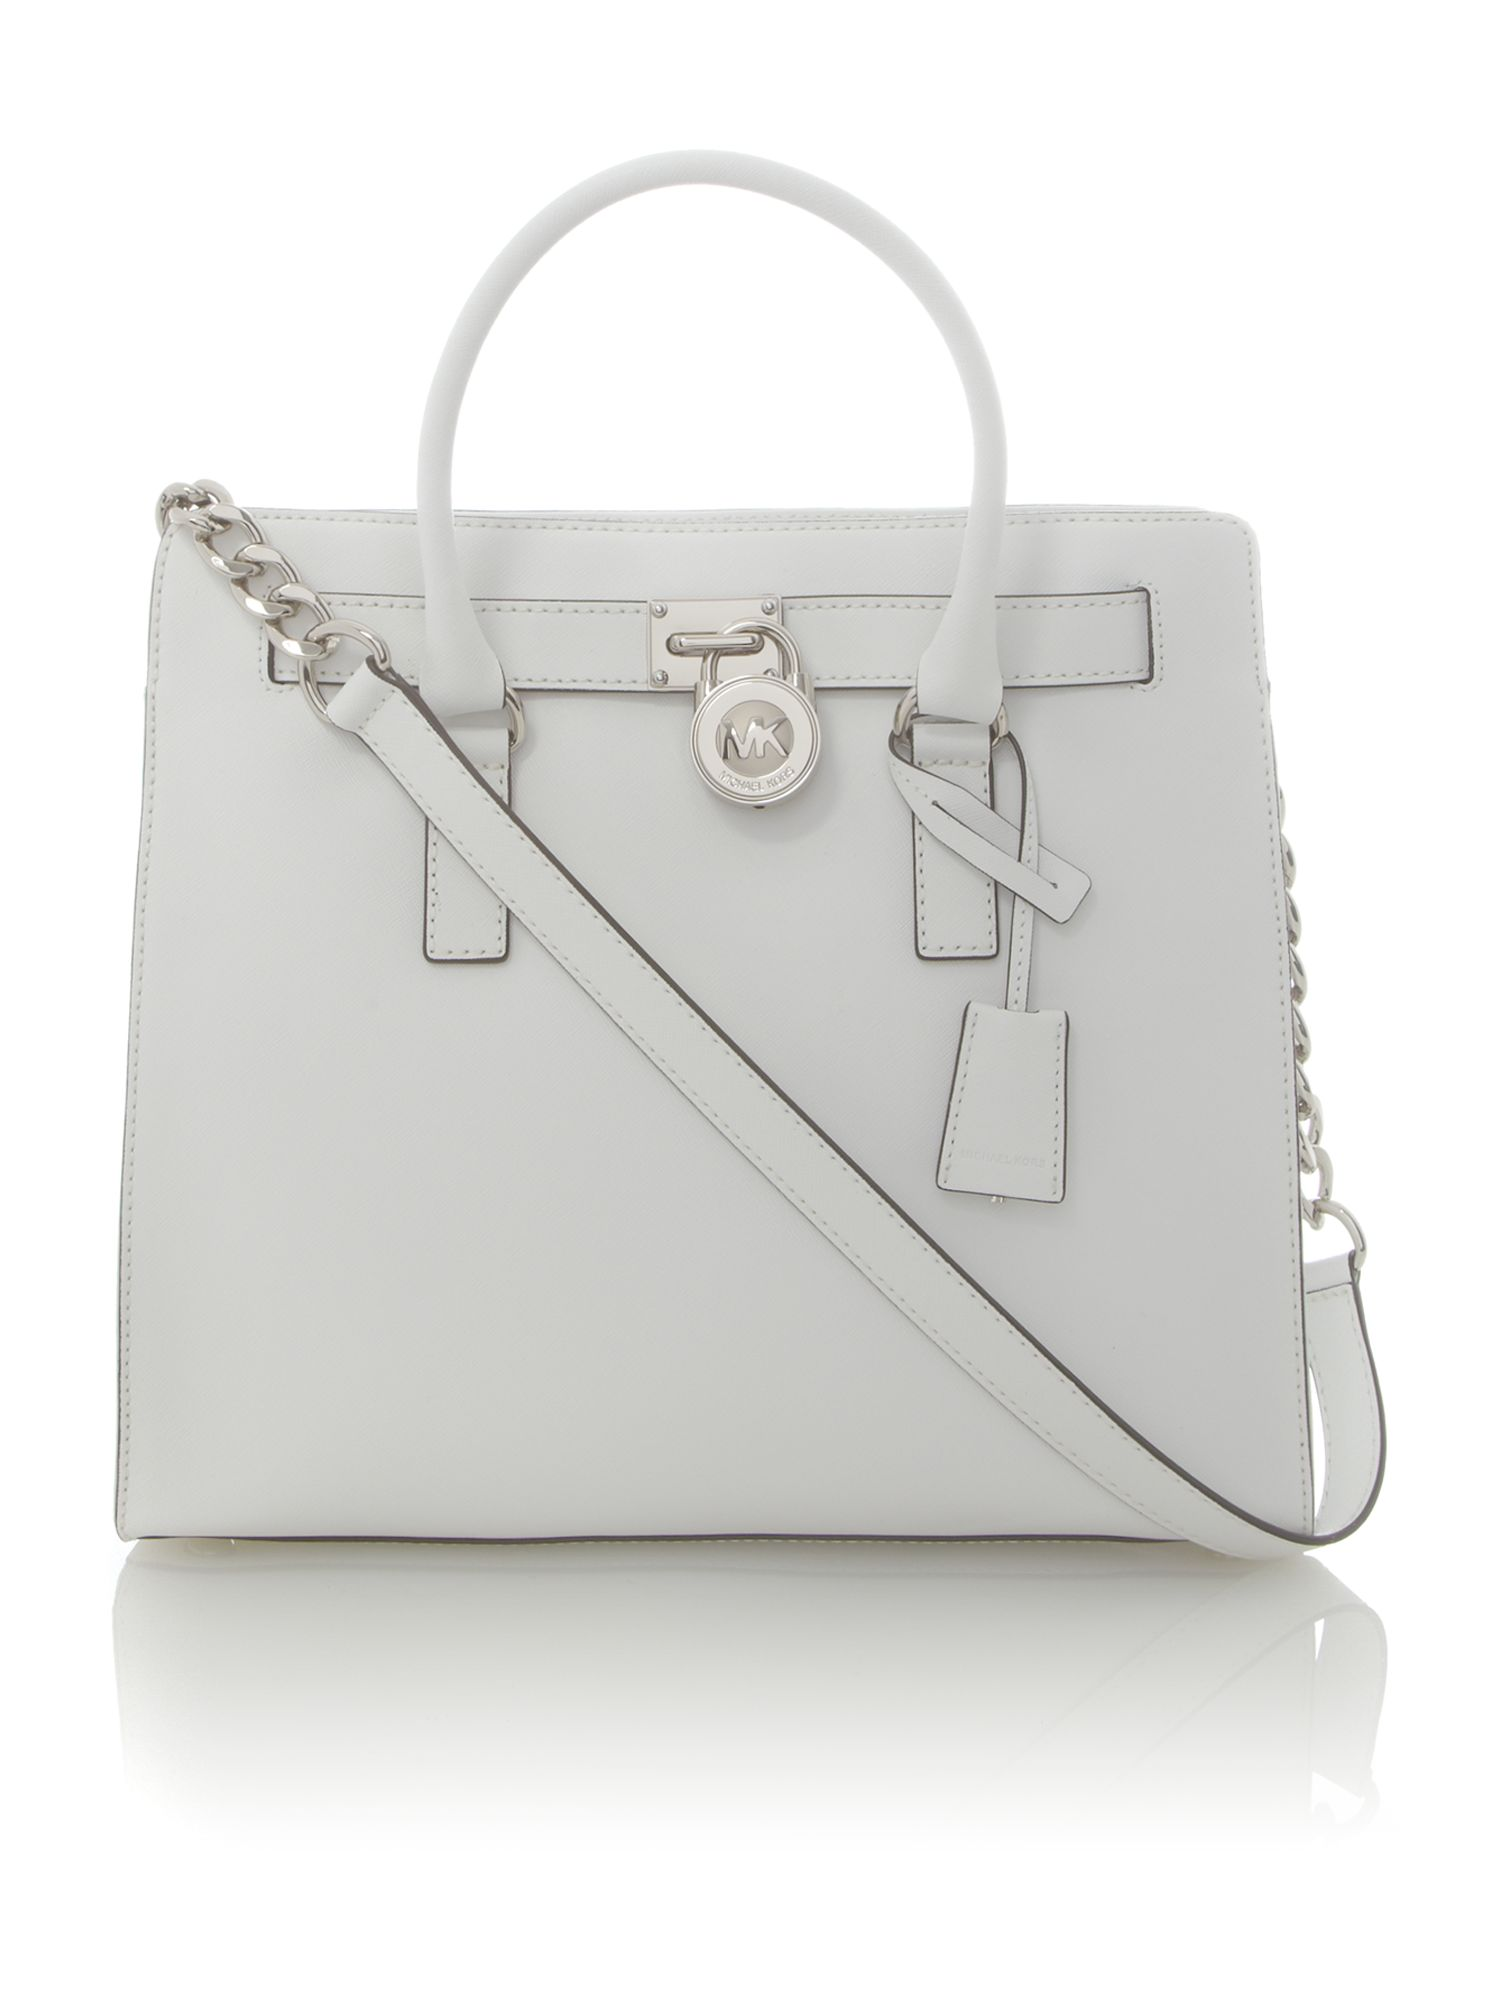 Hamilton large white ns tote bag